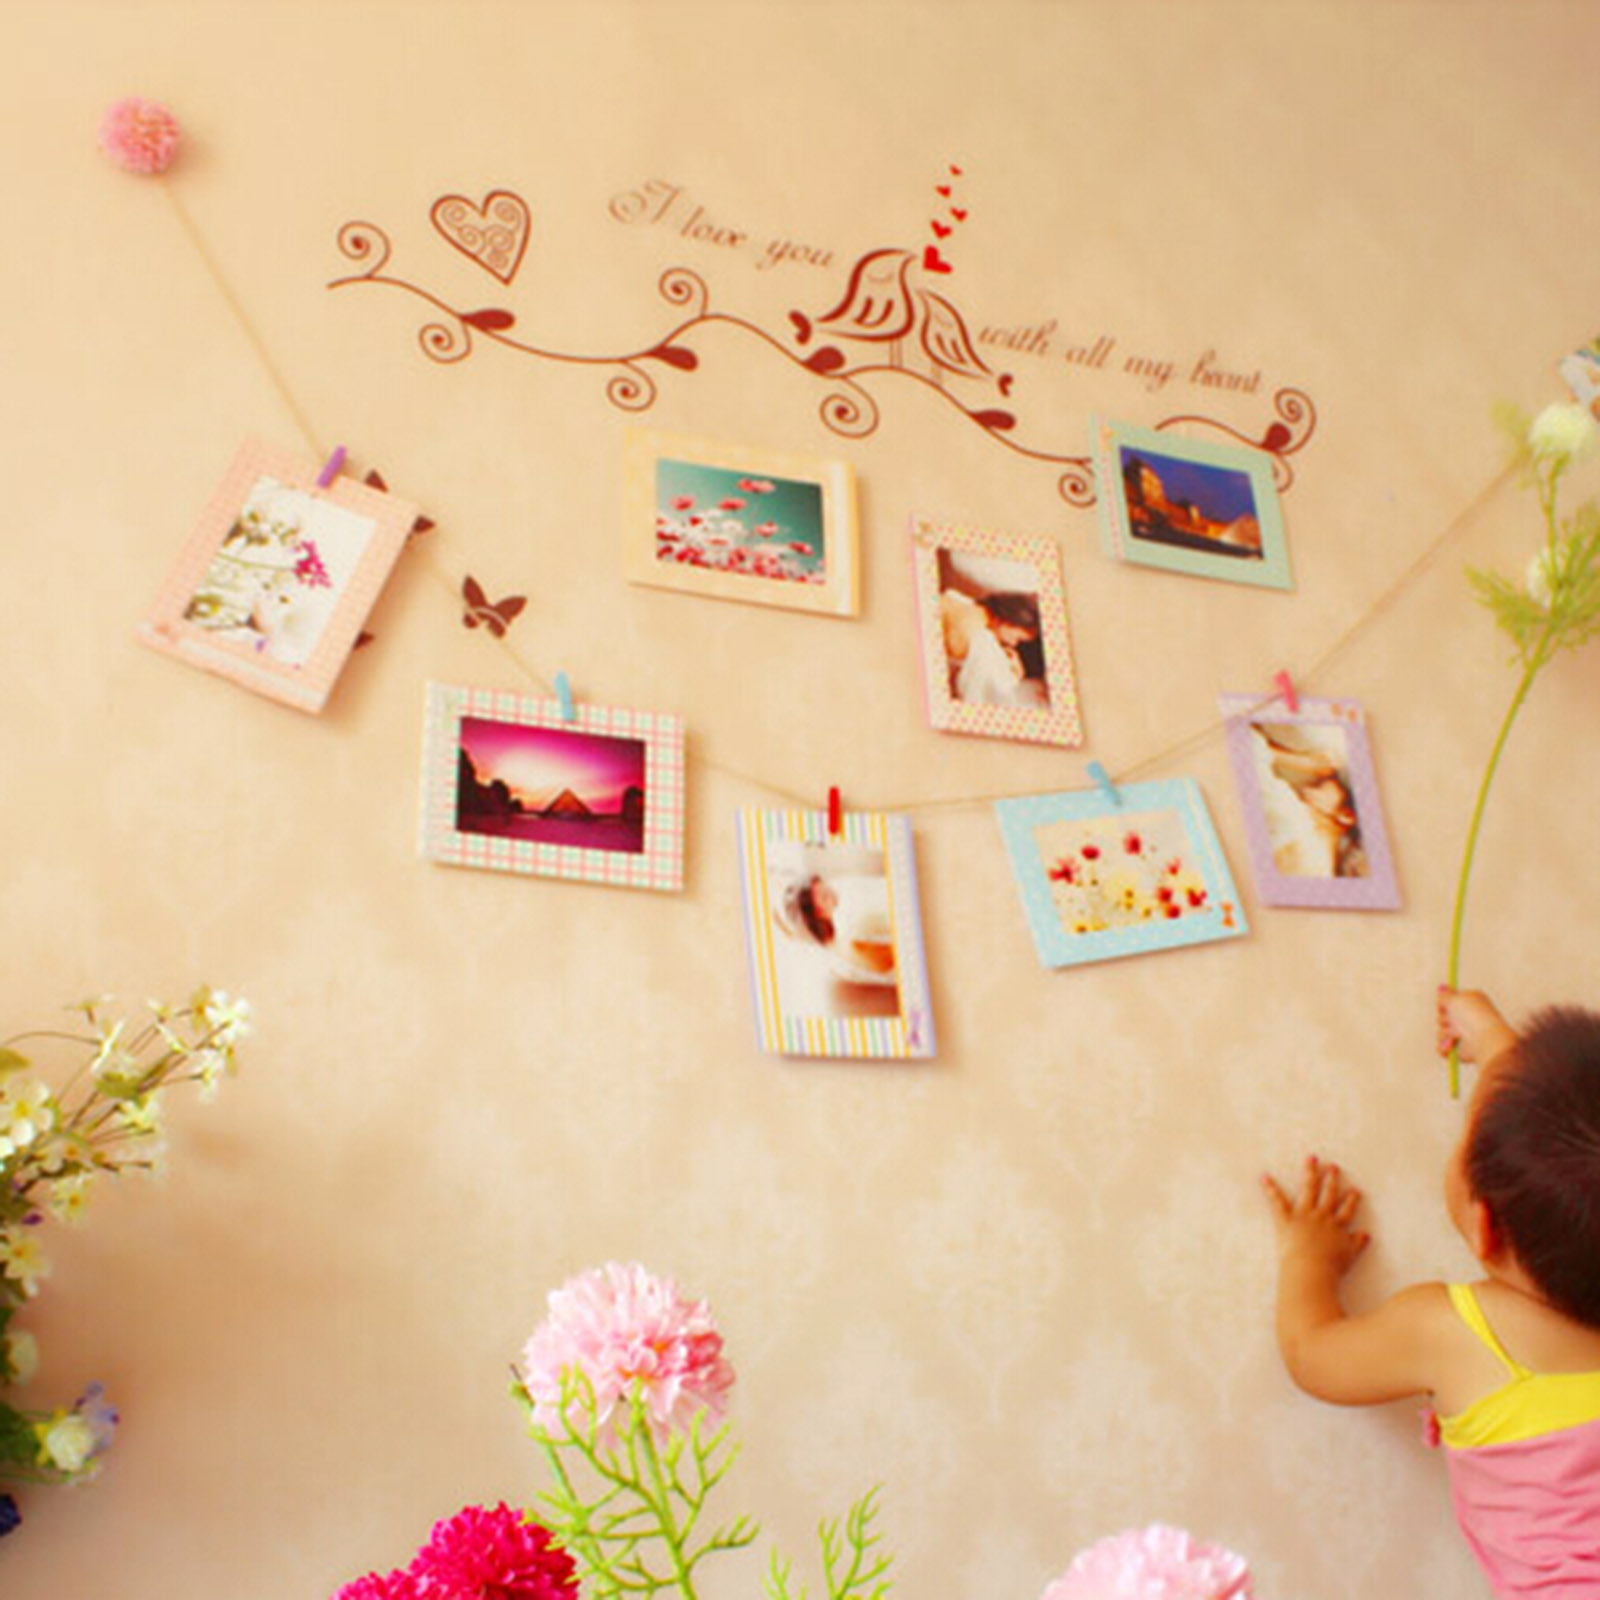 Fancy Wall Decoration Using Paper Sketch - Art & Wall Decor ...